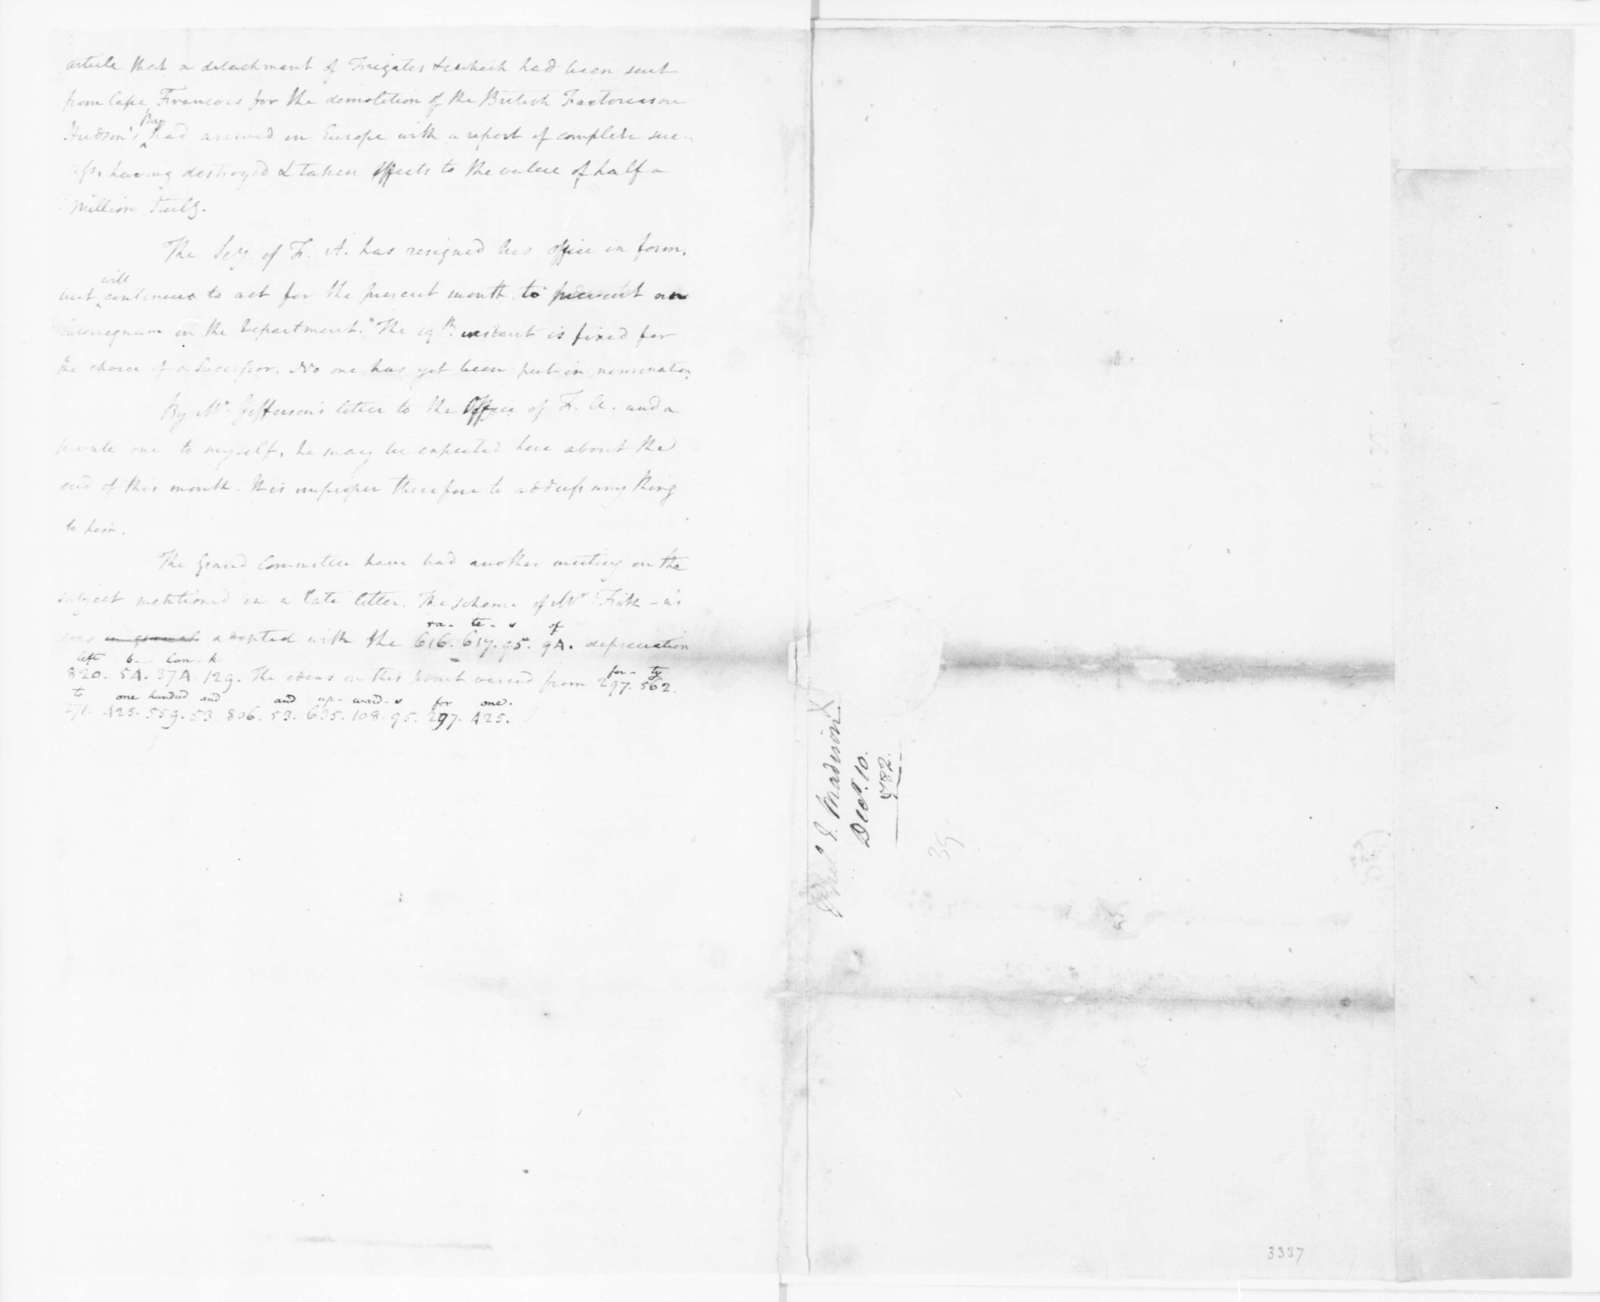 James Madison to Edmund Randolph, December 10, 1782. Partly in Cipher.